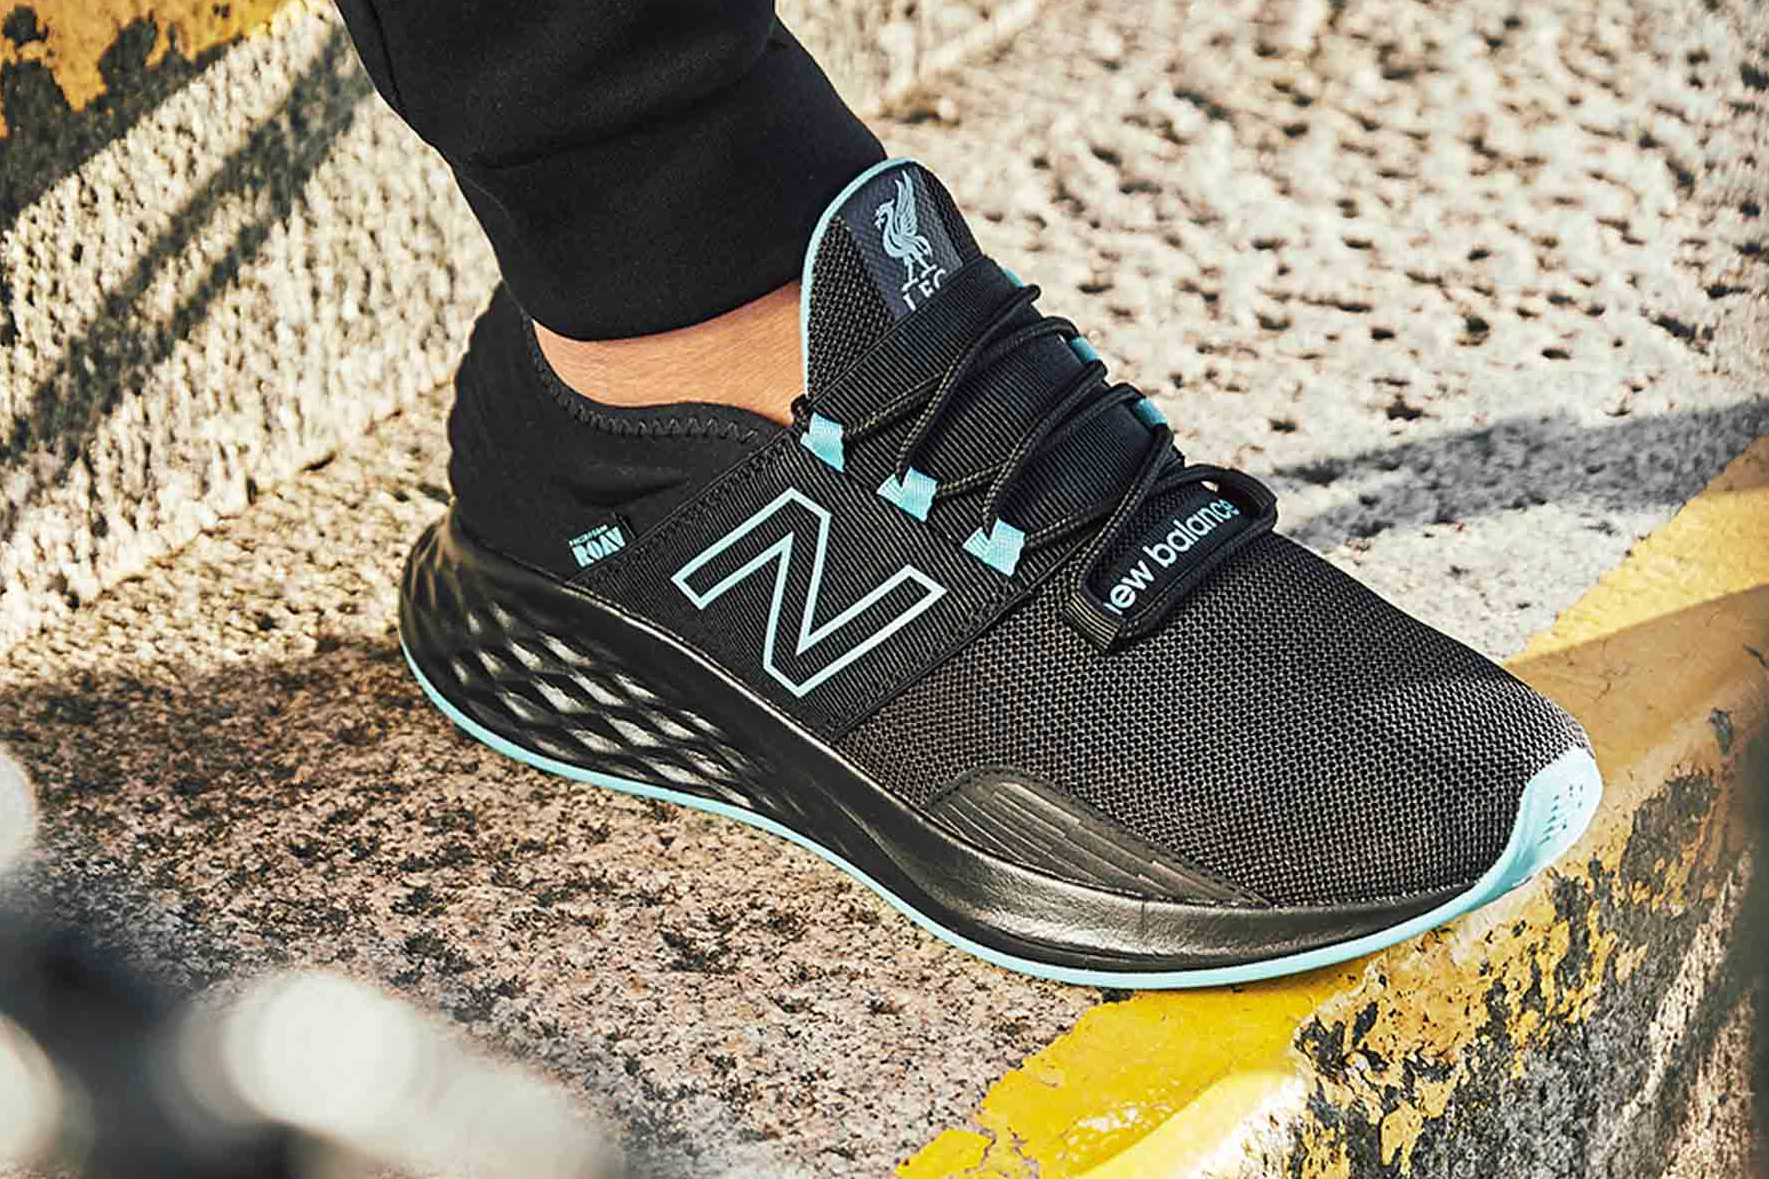 New Balance Limited Edition LFC Roav Trainer liverpool soccer football collaborations